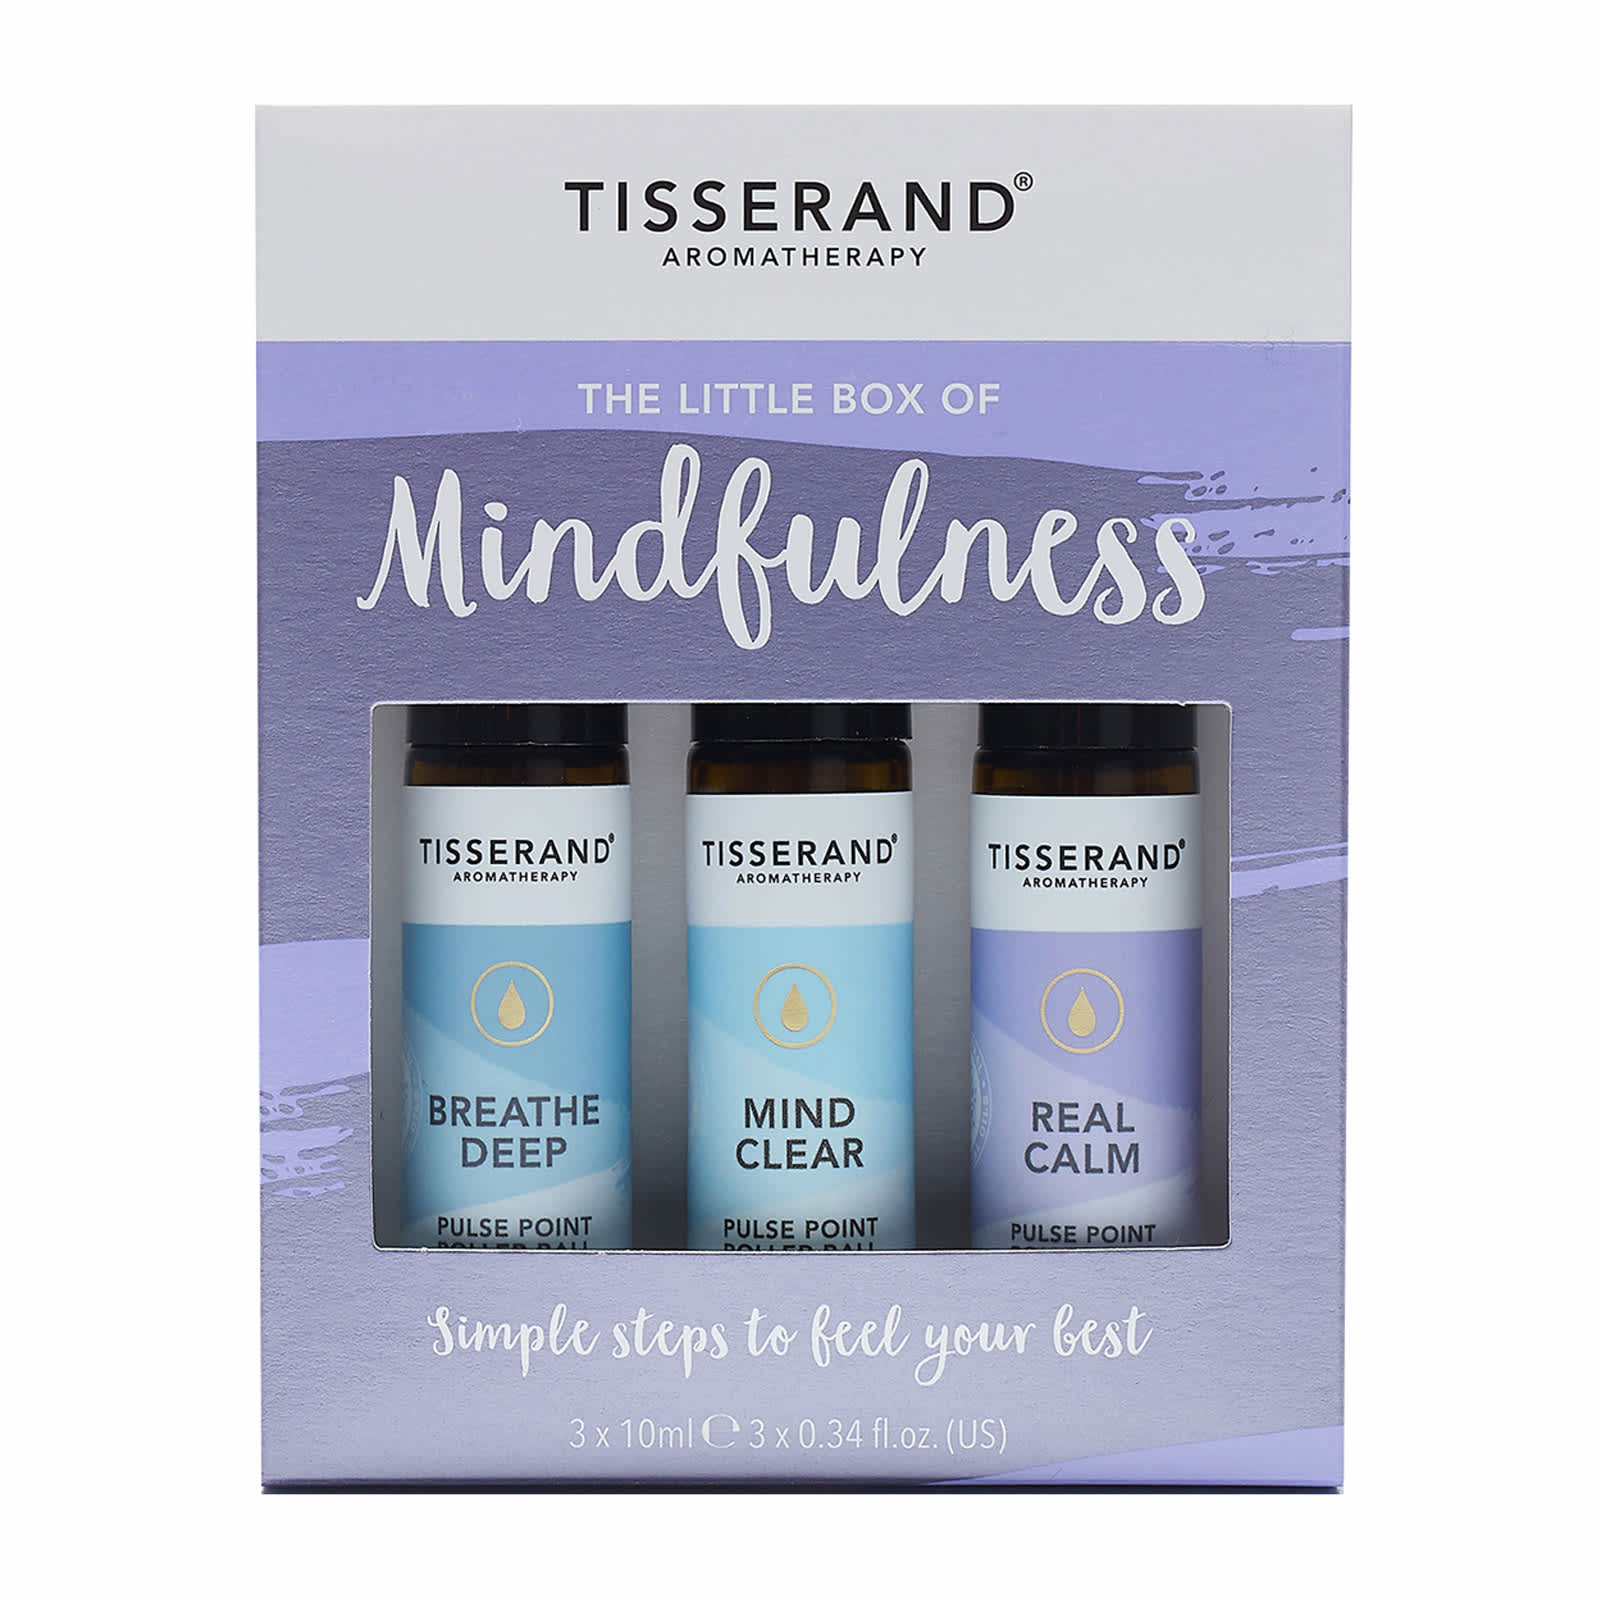 Little Box of Mindfulness - Tisserand